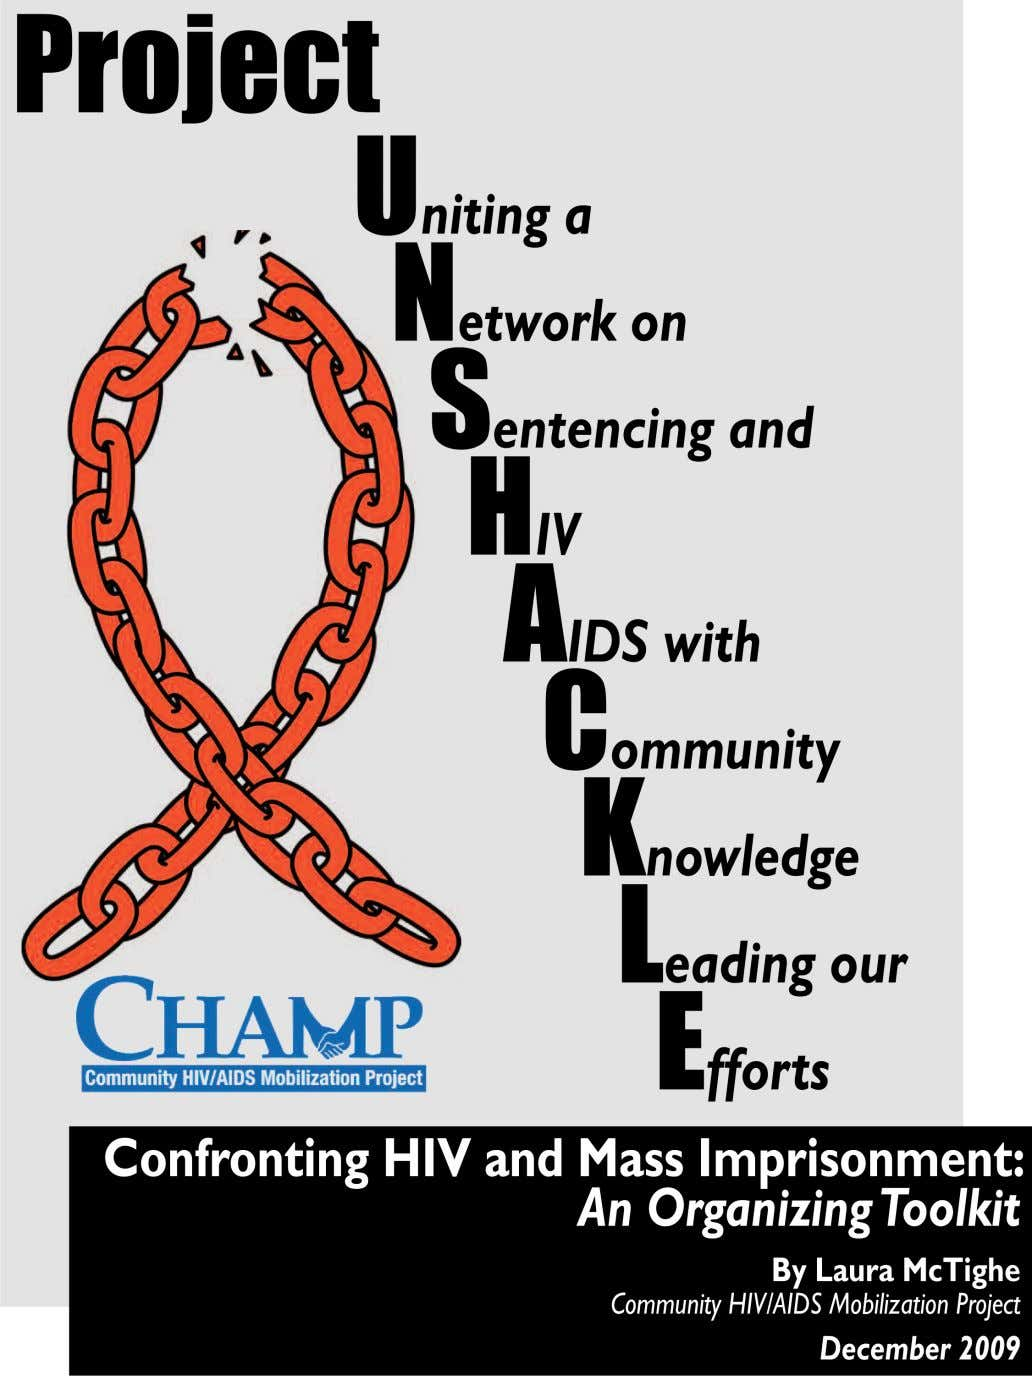 Project UNSHACKLE Organizing Toolkit HIV and Imprisonment HIV and Incarceration HIV and Mass Imprisonment Uniting